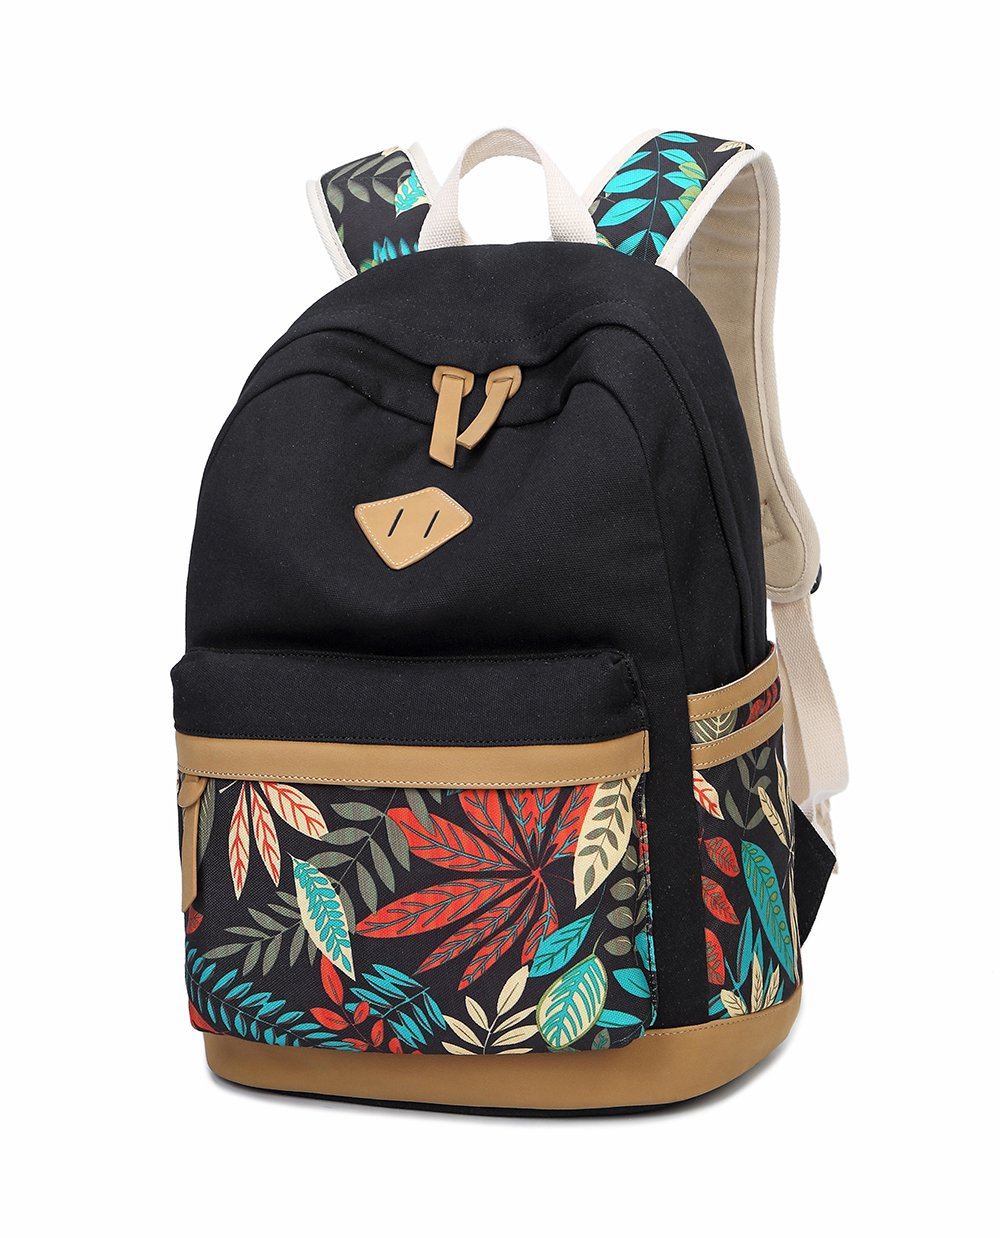 LuckyZ Women Backpack Lightweight Canvas Leather Daykpack Laptop School Bag Cute Printng Travel Shoulder Bookbags Leaf Black by Swacort